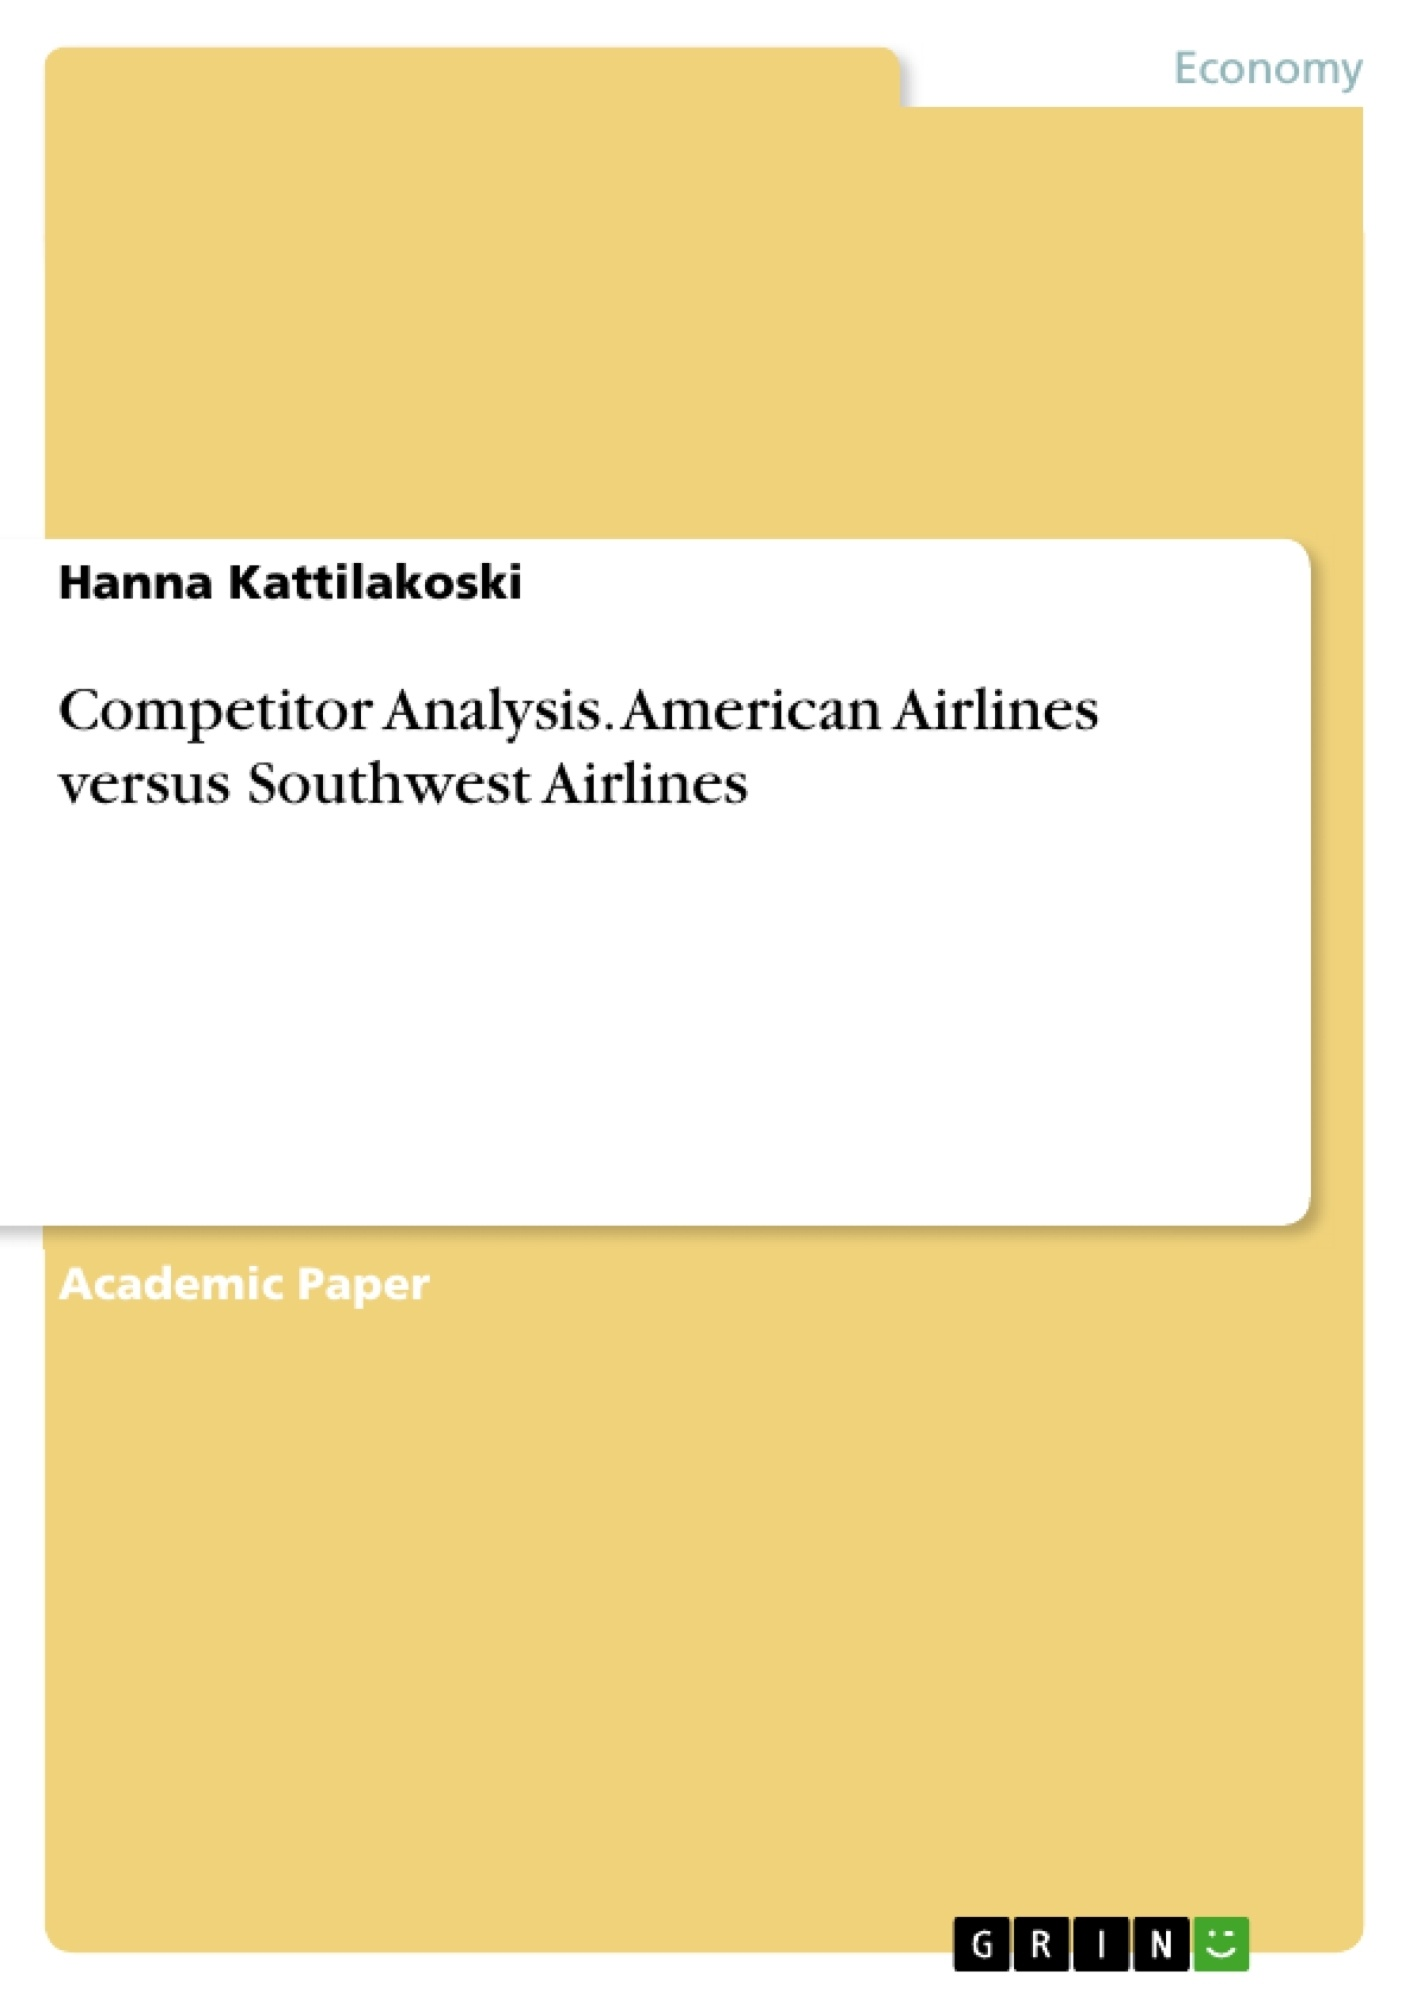 Title: Competitor Analysis. American Airlines versus Southwest Airlines